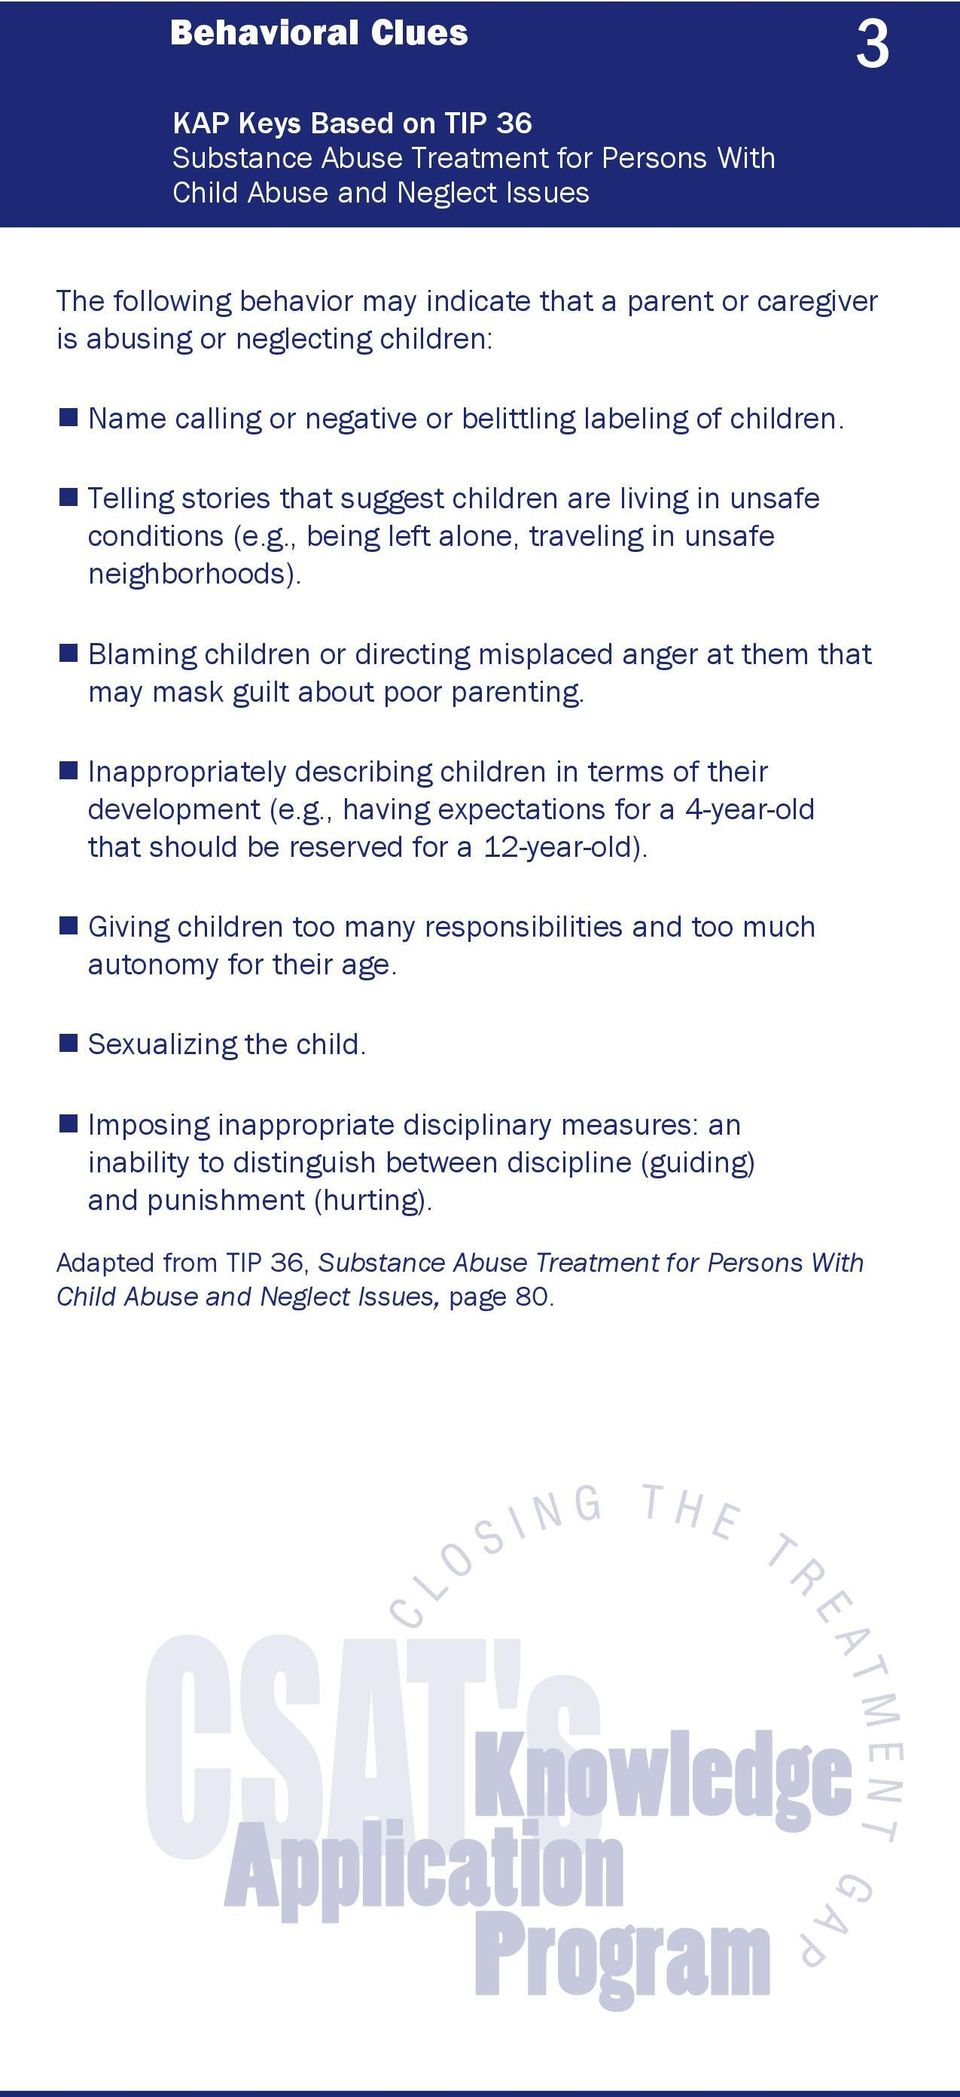 Blaming children or directing misplaced anger at them that may mask guilt about poor parenting. Inappropriately describing children in terms of their development (e.g., having expectations for a 4-year-old that should be reserved for a 12-year-old).